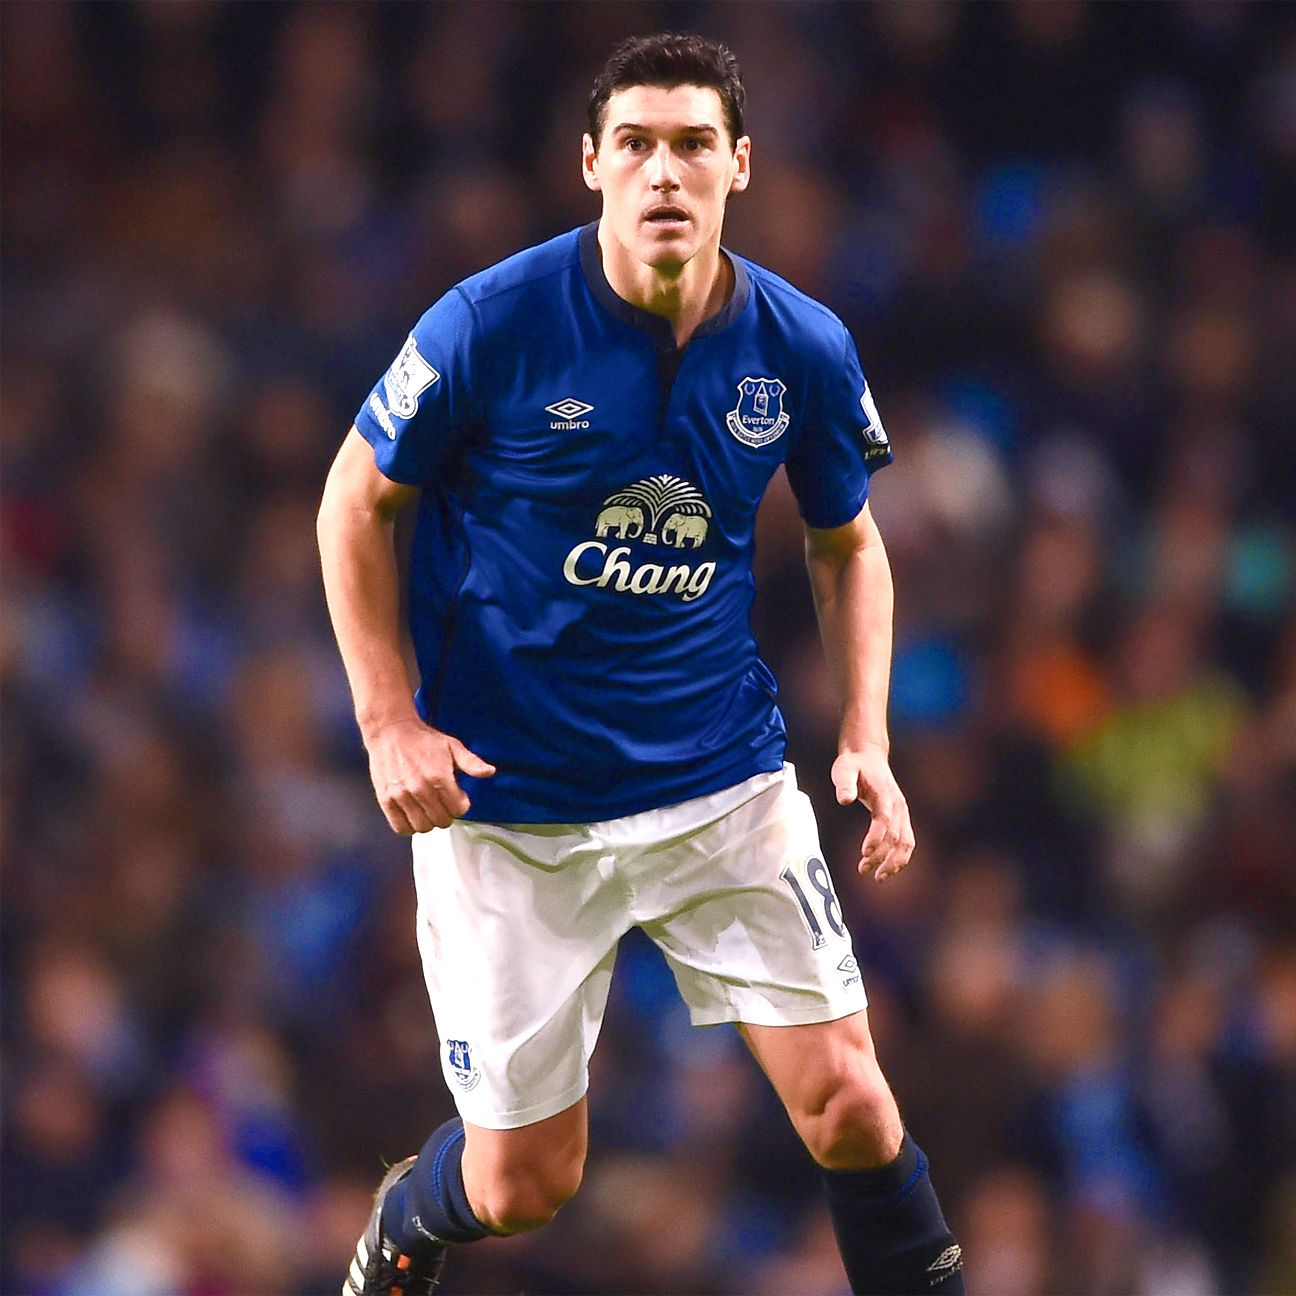 Gareth Barry looked a step behind on Saturday, and his frustration culminated with his fifth yellow card of the season.